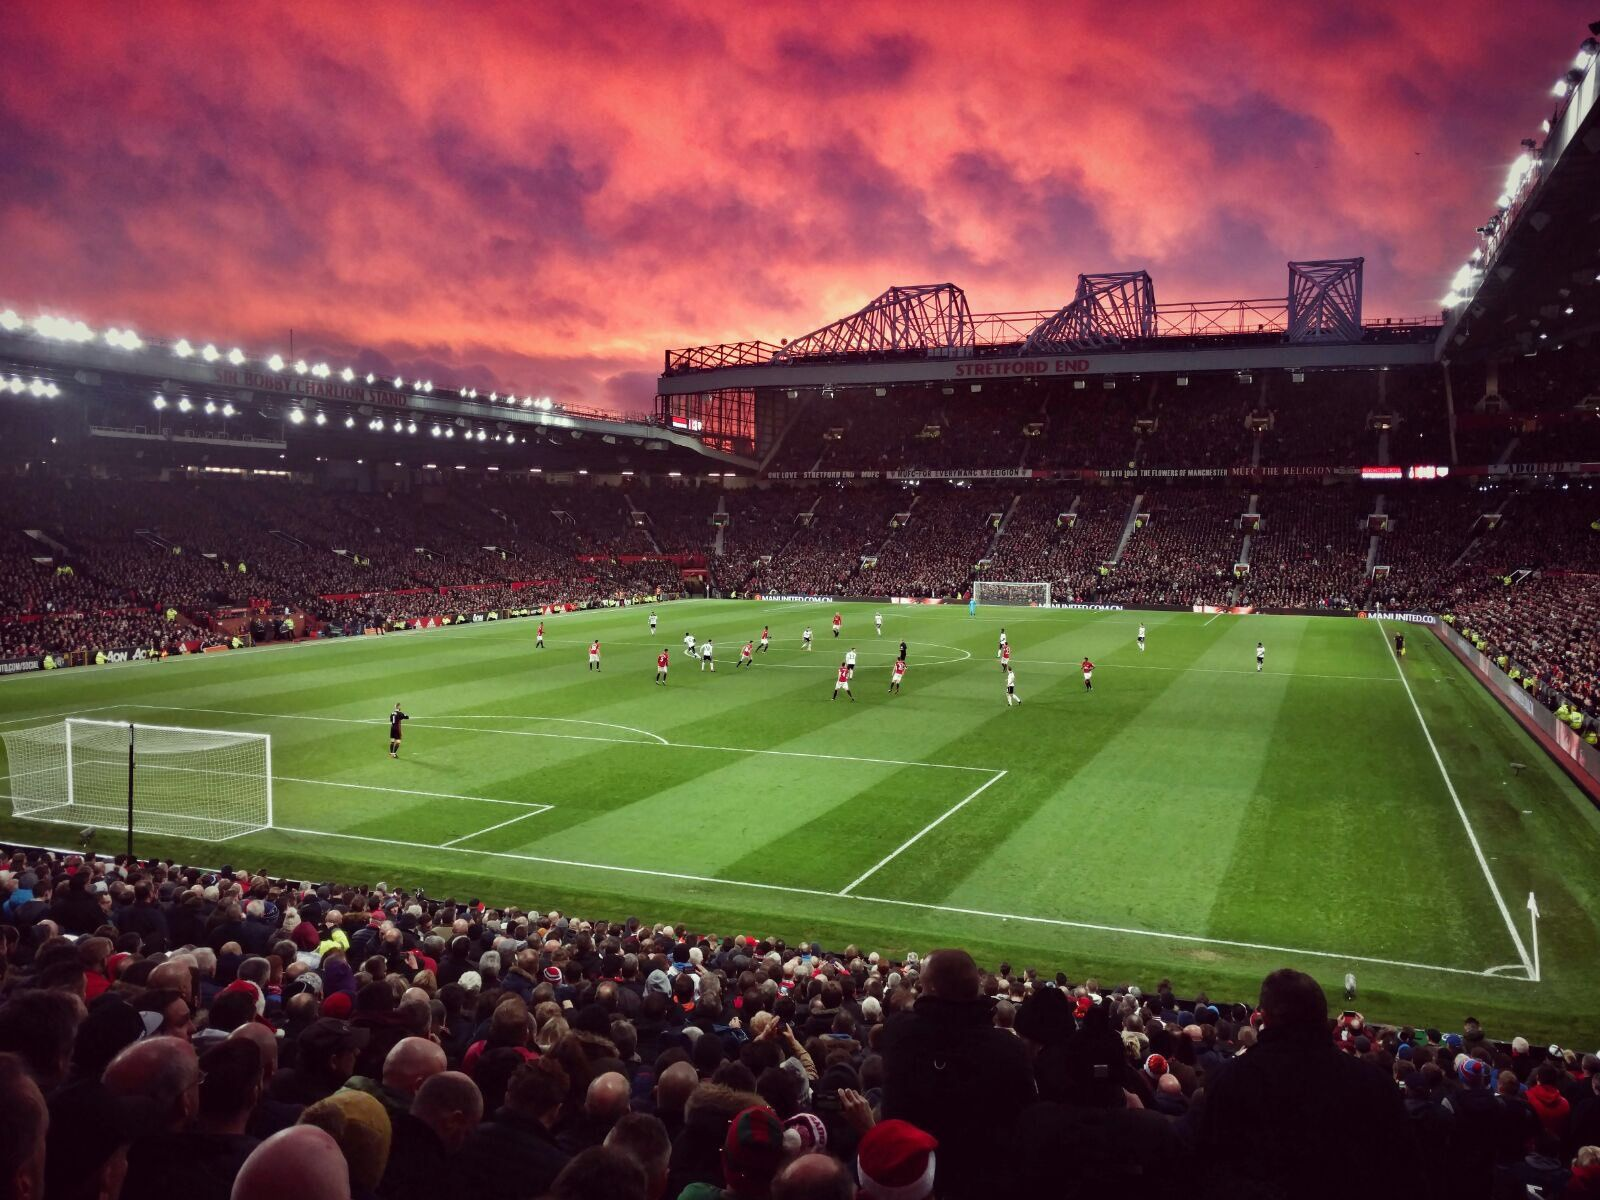 Manchester United On Twitter In 2020 Manchester United Wallpaper Manchester United Fans Manchester United